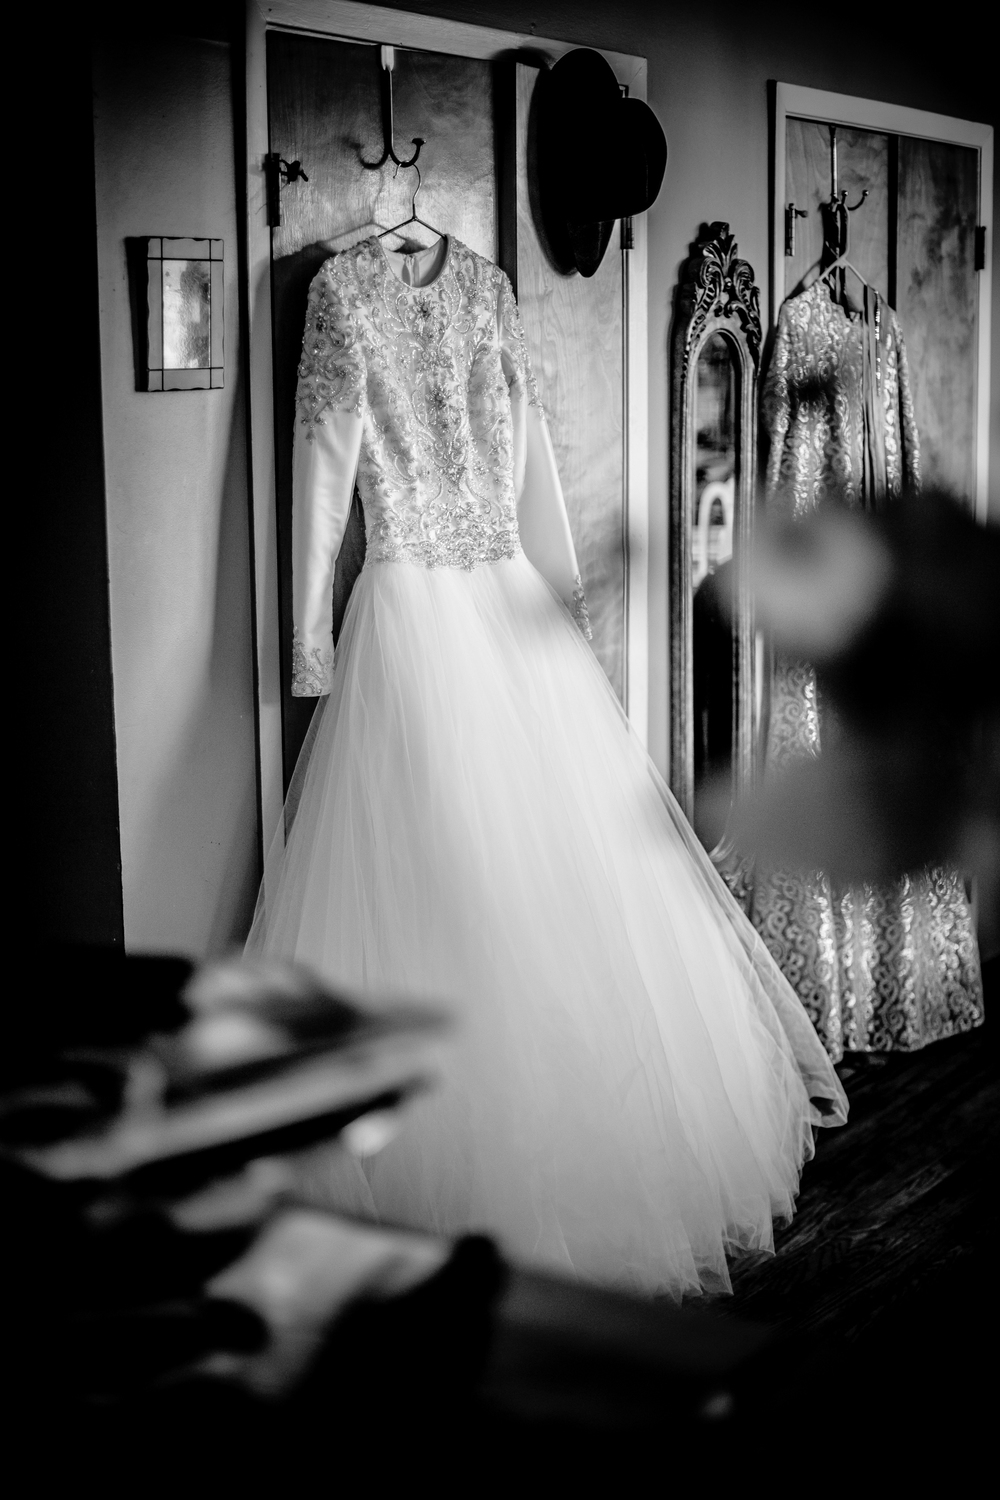 Wedding Iossi and Gitty Khafif  - Eliau Piha studio photography, new york, events, people 770 brooklyn -0037.jpg